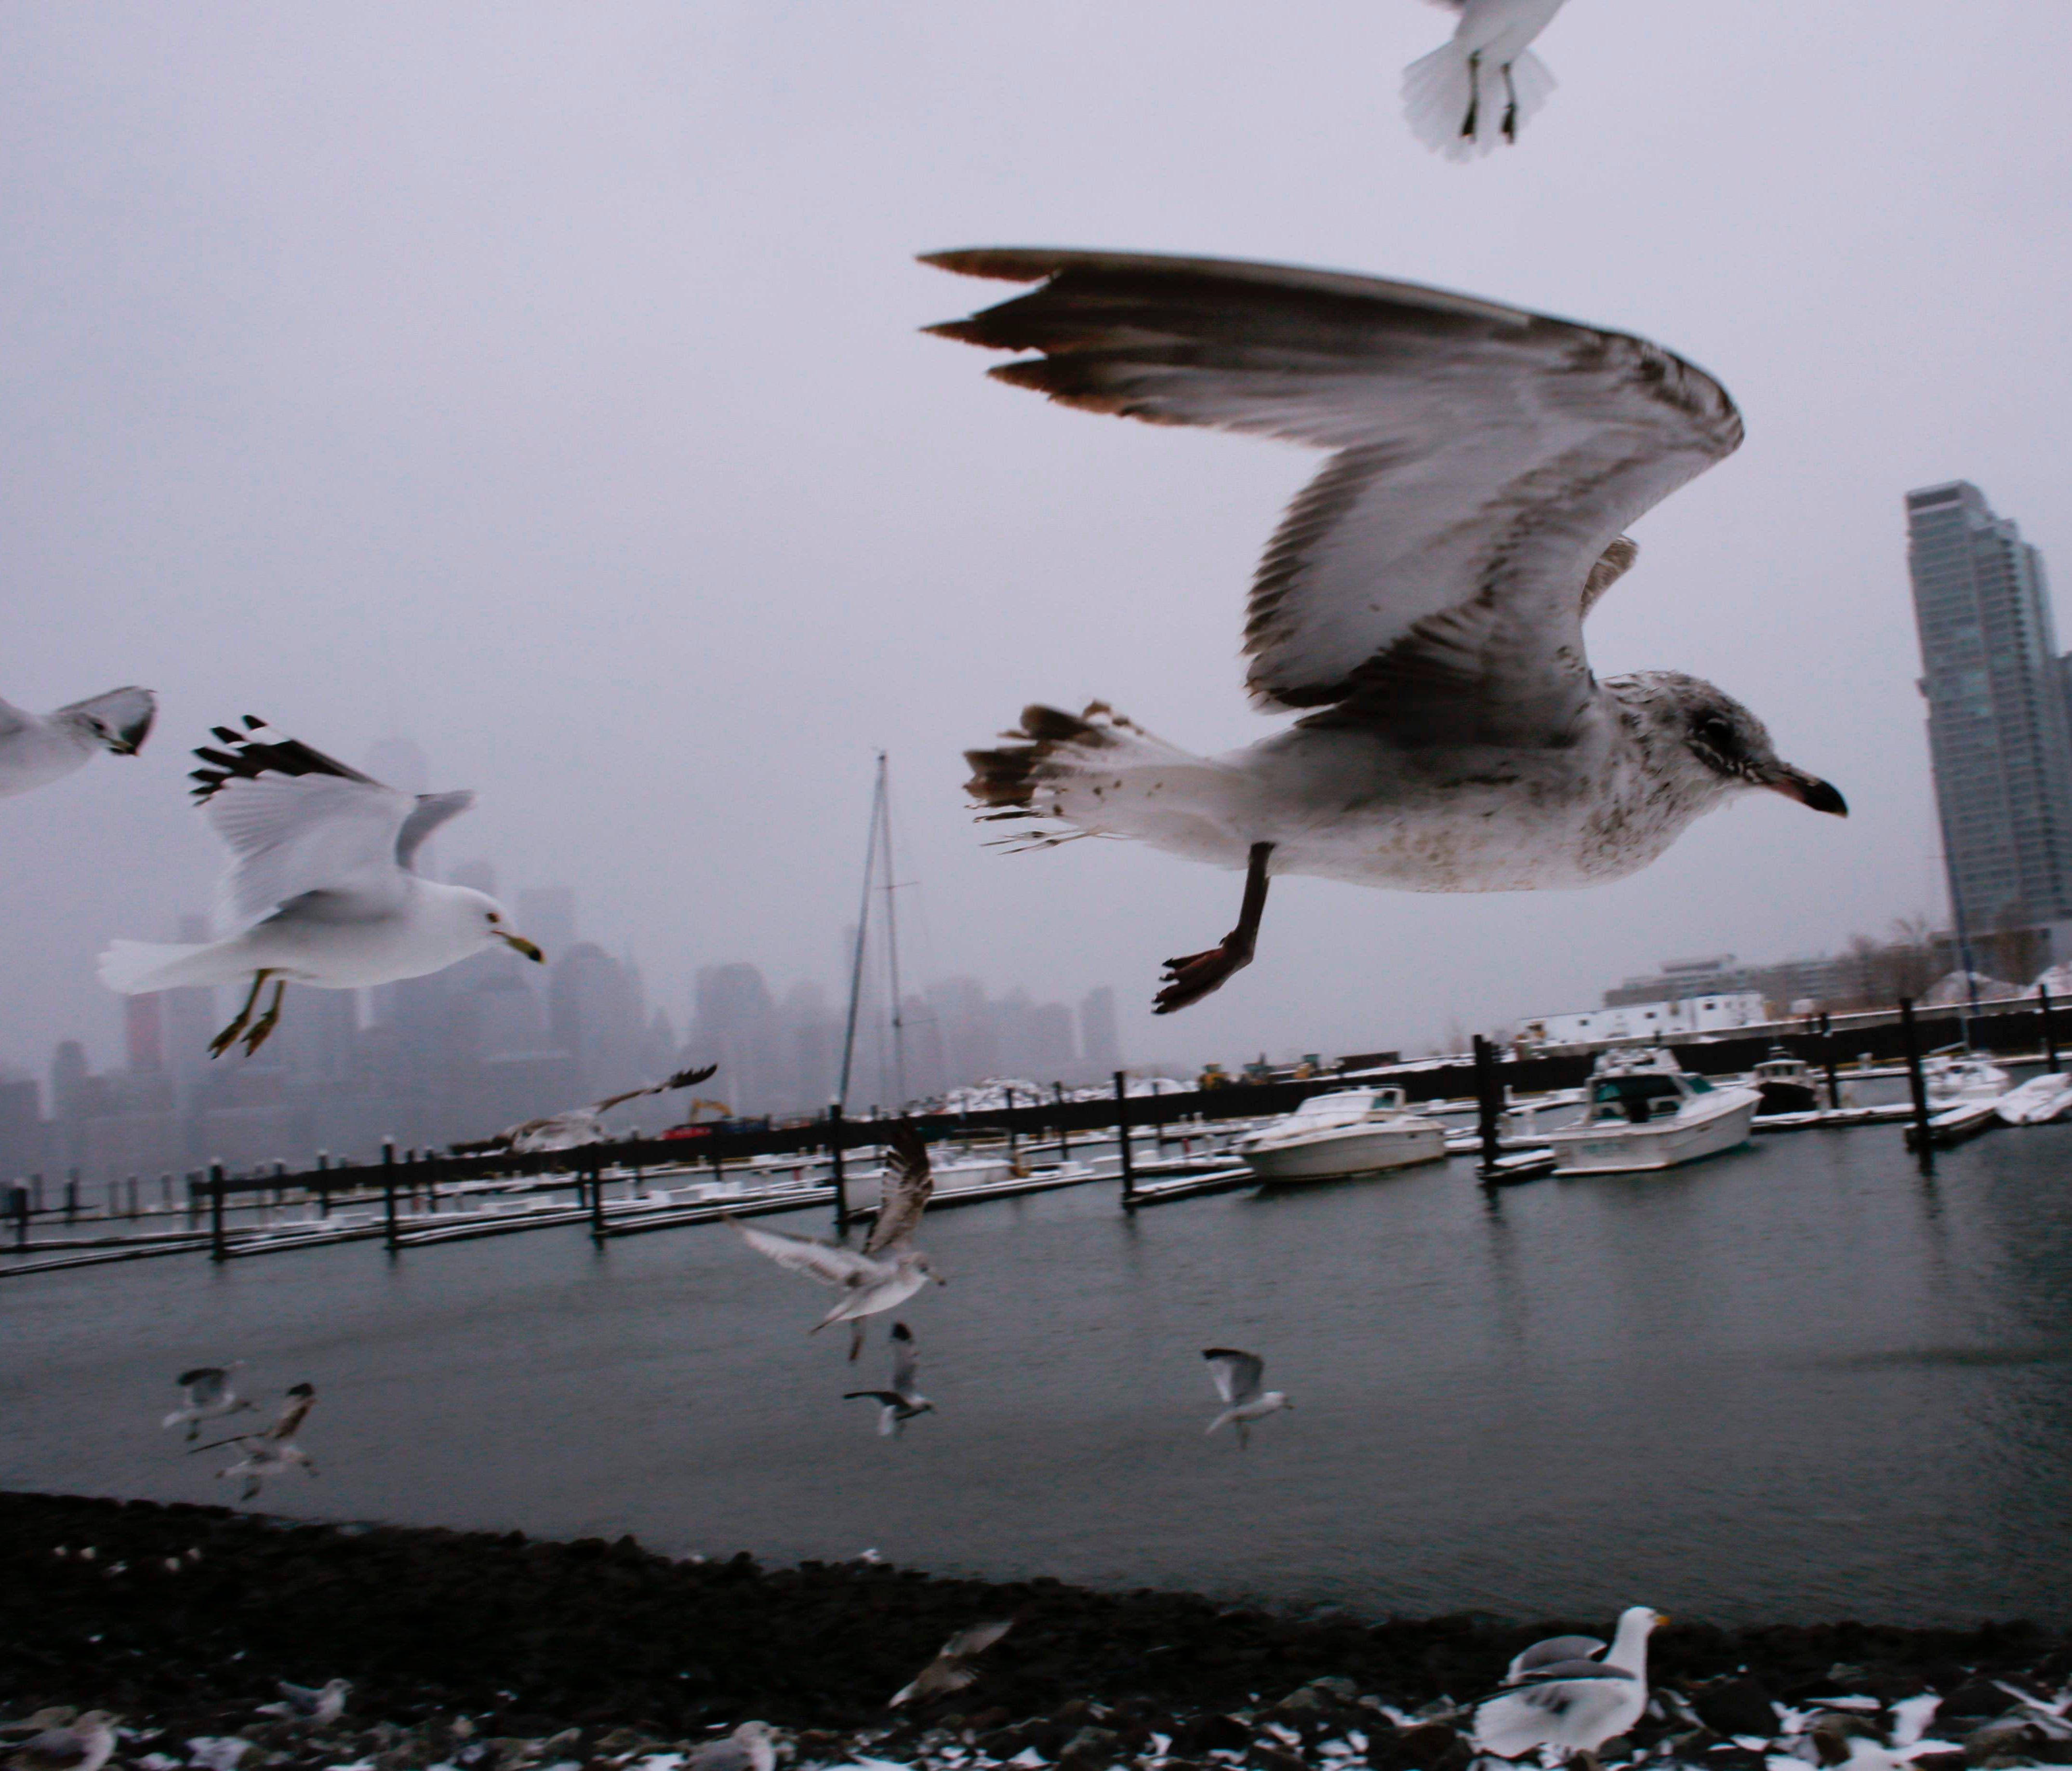 The skyline of New York appears in the distance as seagulls fly over the water's edge on March 14, 2017 in Jersey City, New Jersey.